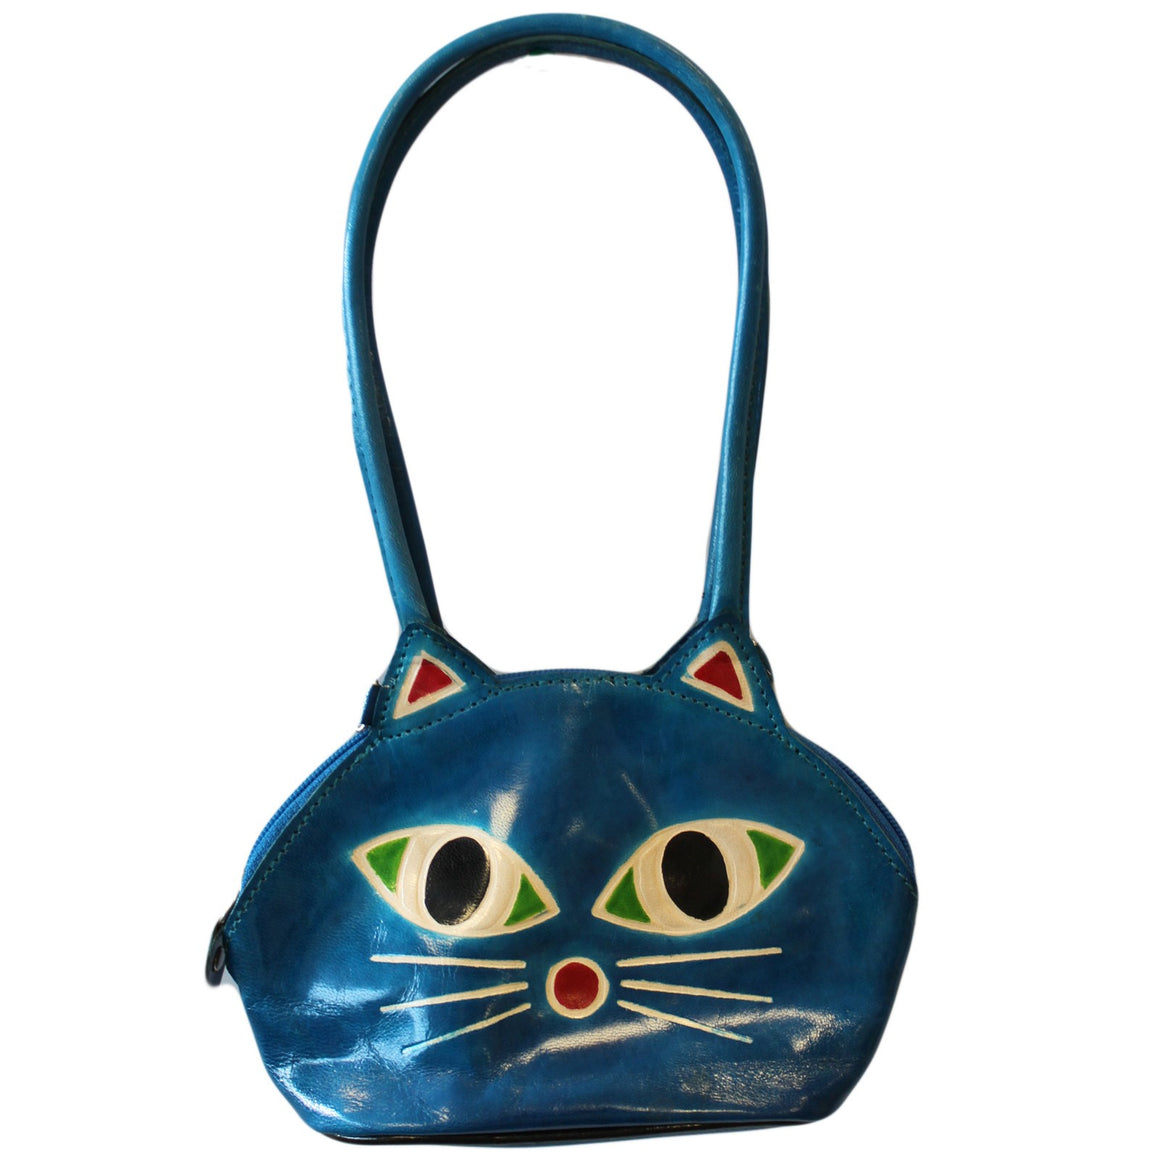 Bags, Black, Brown, Burgundy, Gift, Goatskin, Green, India, Indian, Leather, Leather Bags, Pink, Pussy Cat Bags, Red, Turquoise, Unusual Bags